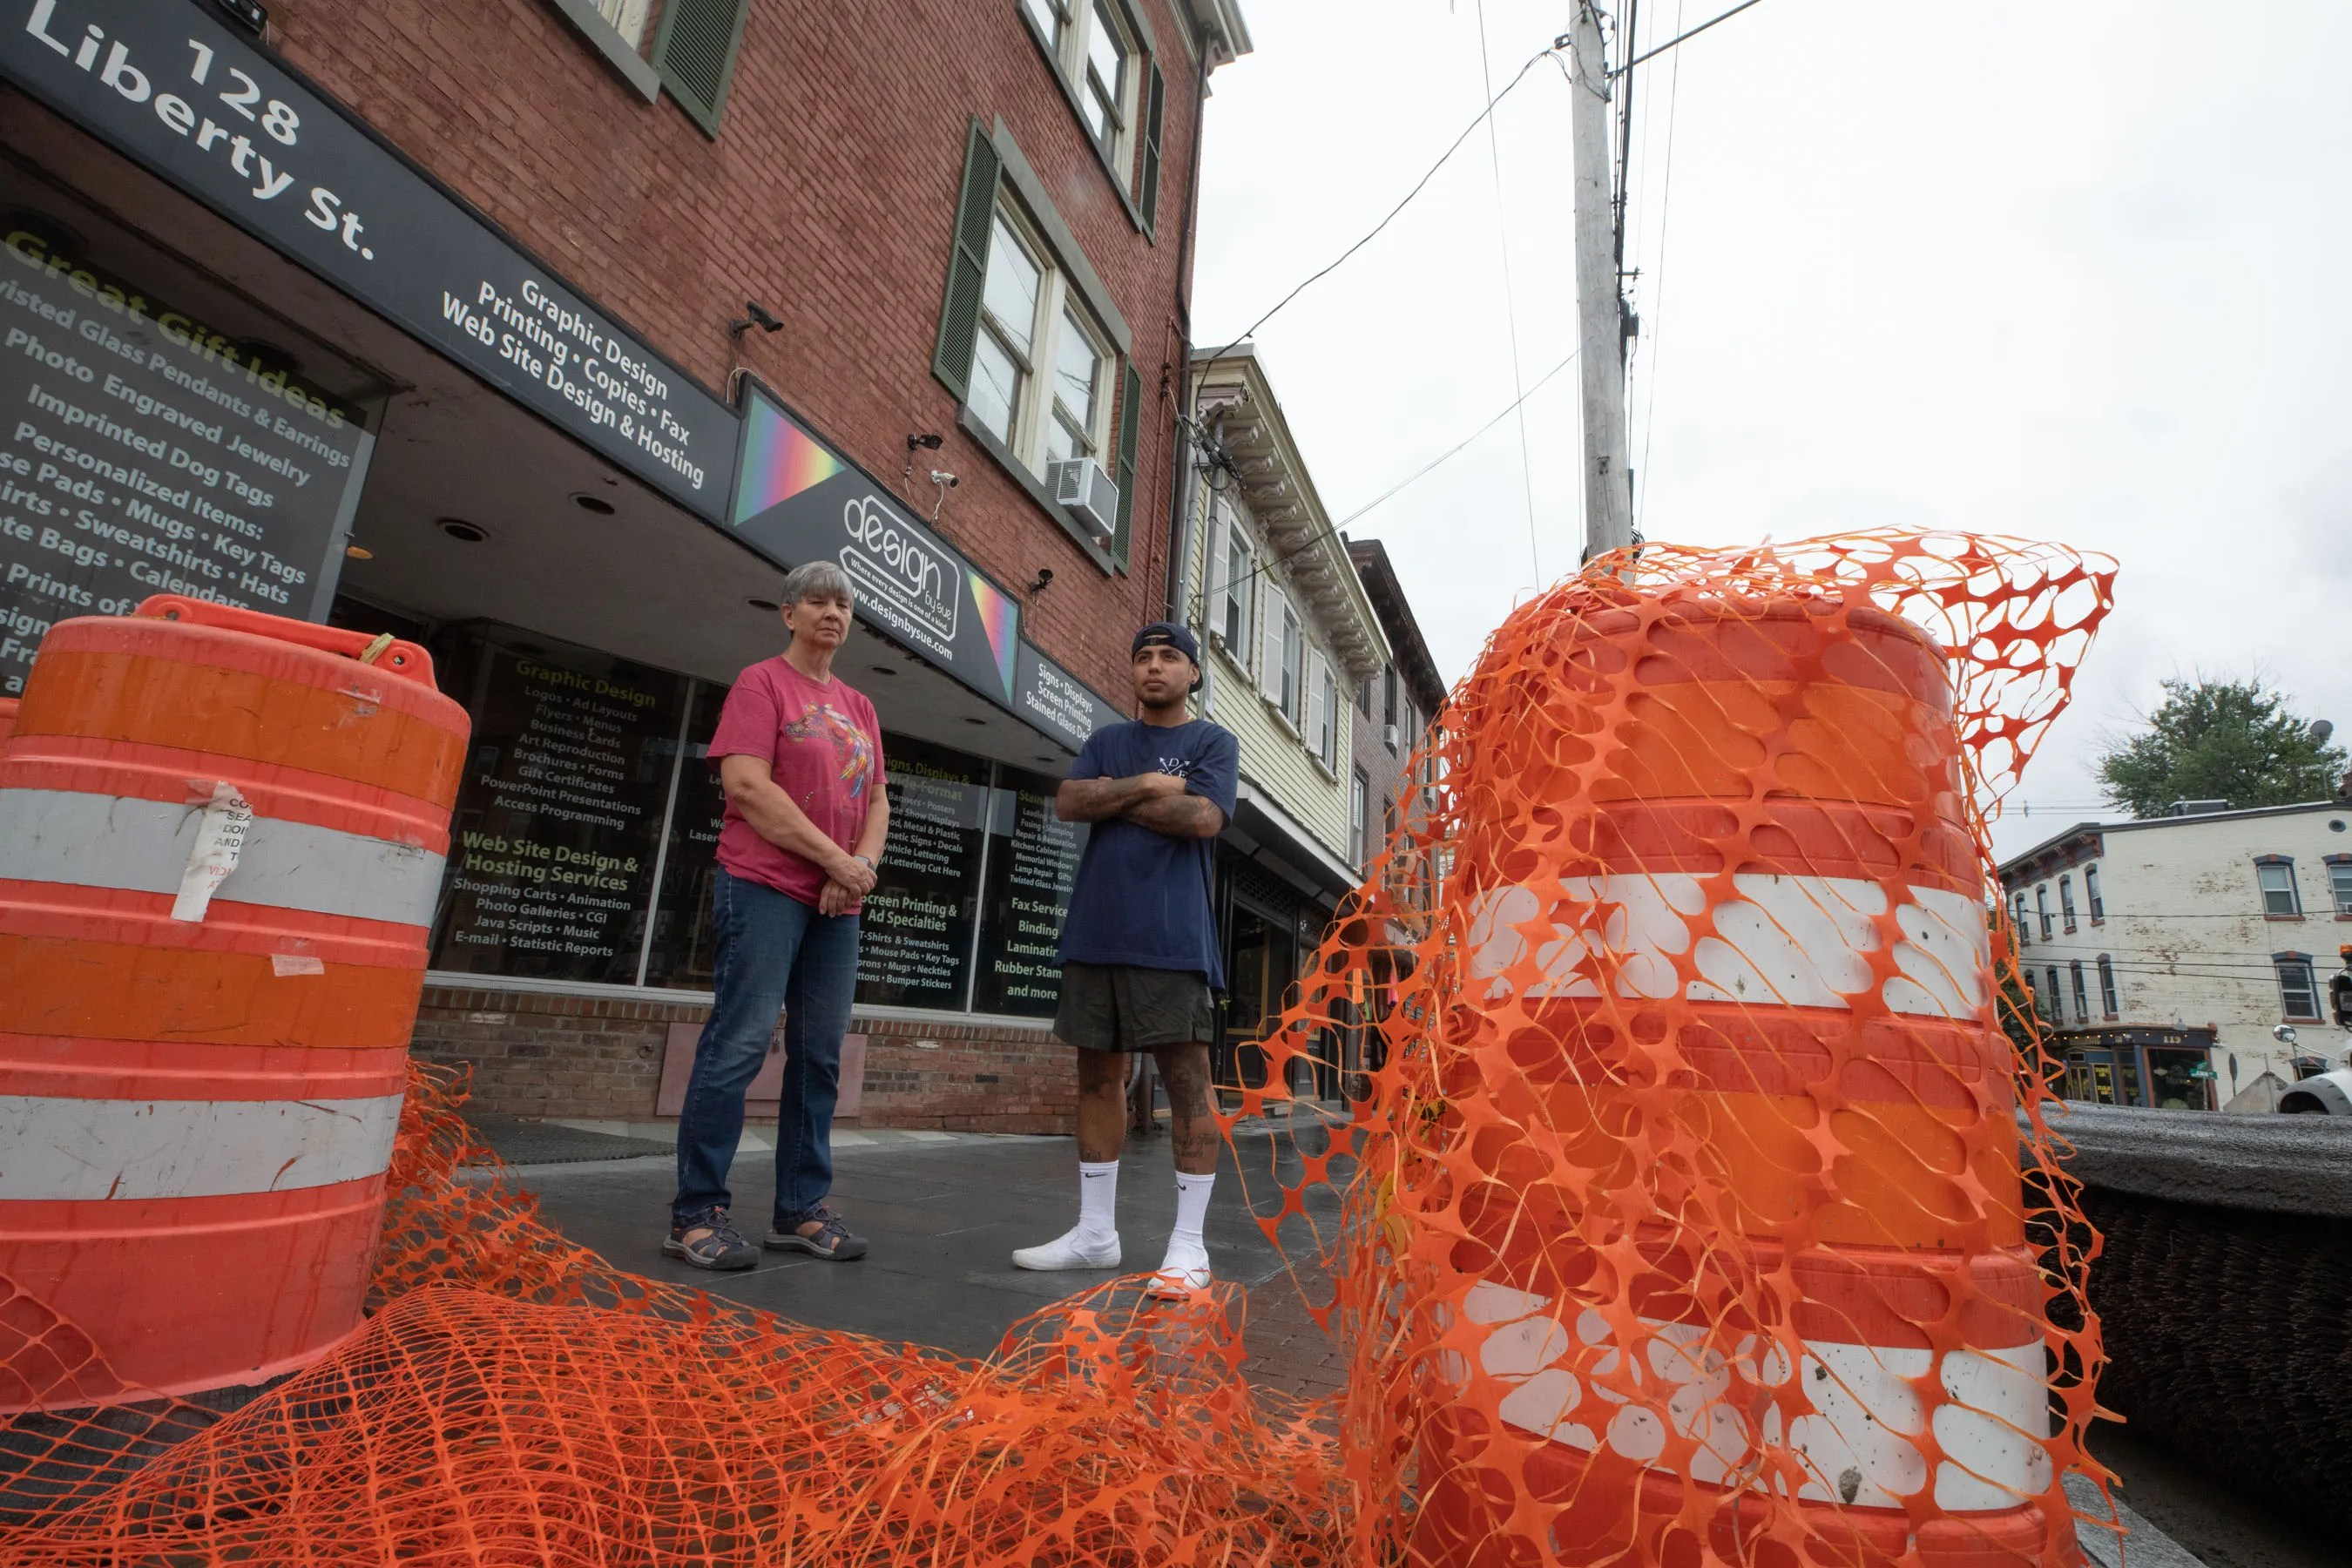 Designs by Sue owner Sue Young, left, and Casa De Fxdes Barberparlor owner Efrain Gordo Acosta, right, stand in front of their businesses in Newburgh, where streetscape construction has been ongoing.